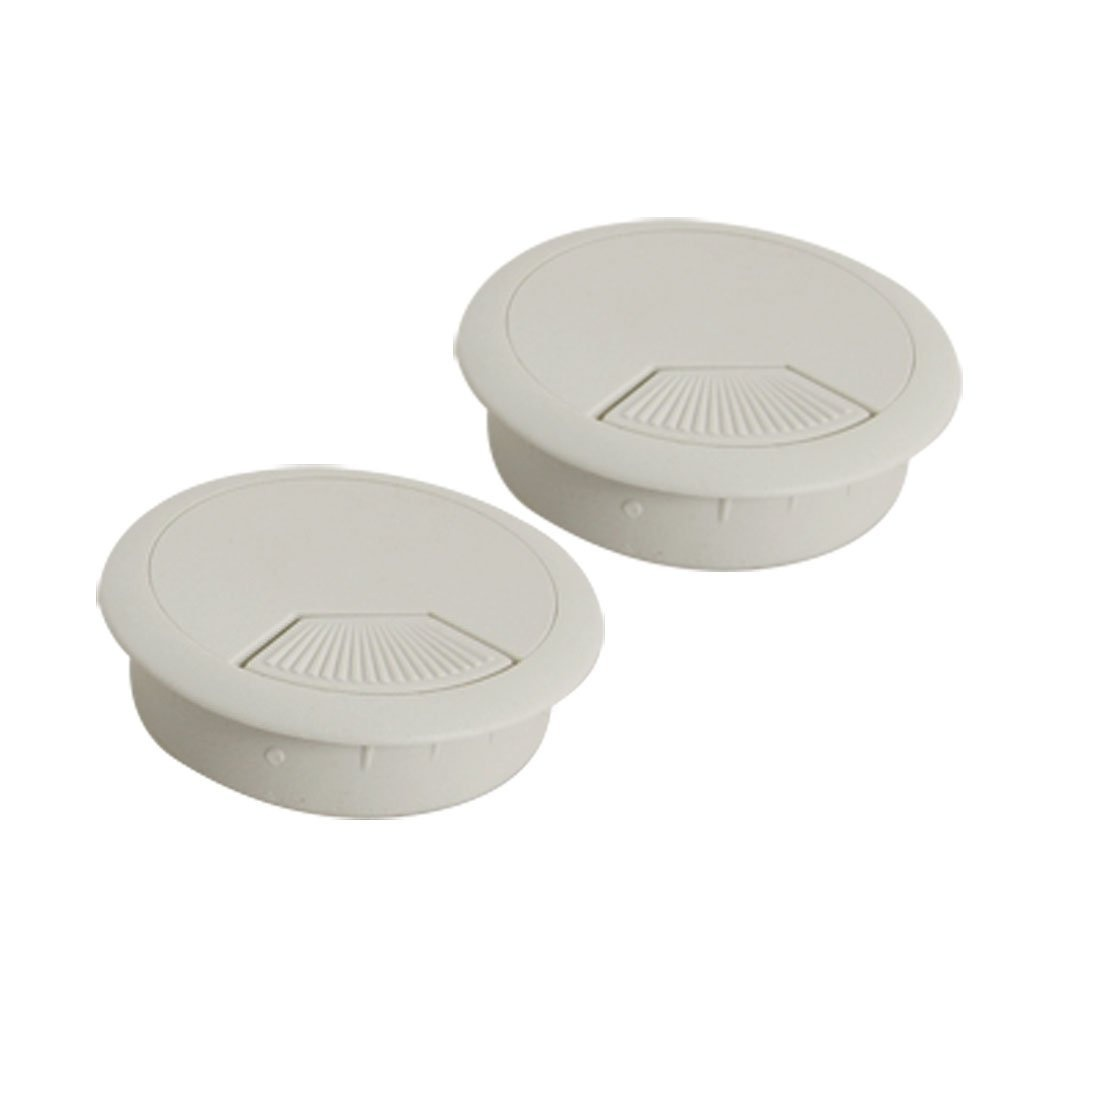 Astounding 2 Pcs Light Grey Round Plastic Desk Grommets Wire Hole Cap Cover By Wiring 101 Capemaxxcnl